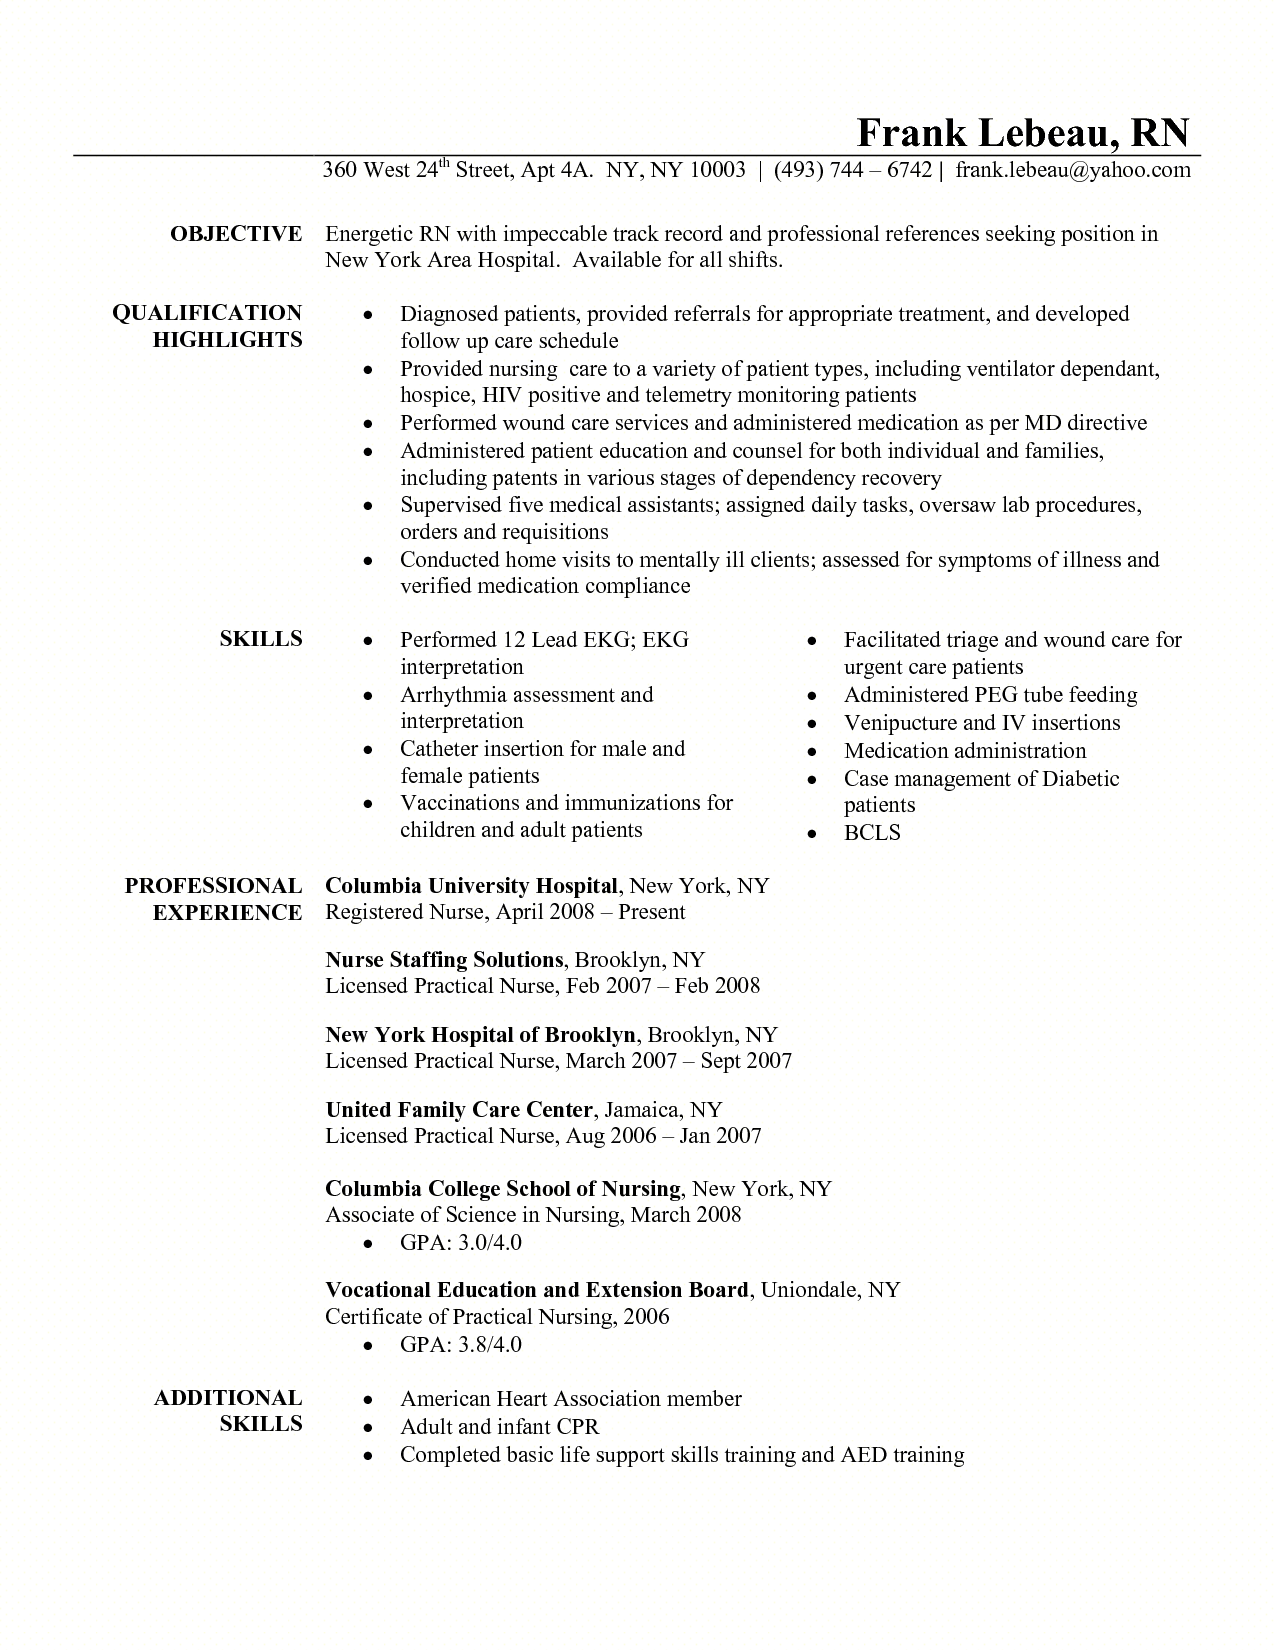 Telemetry Nurse Resume Resume For Triage Nurse  Httpwwwresumecareerresumefor